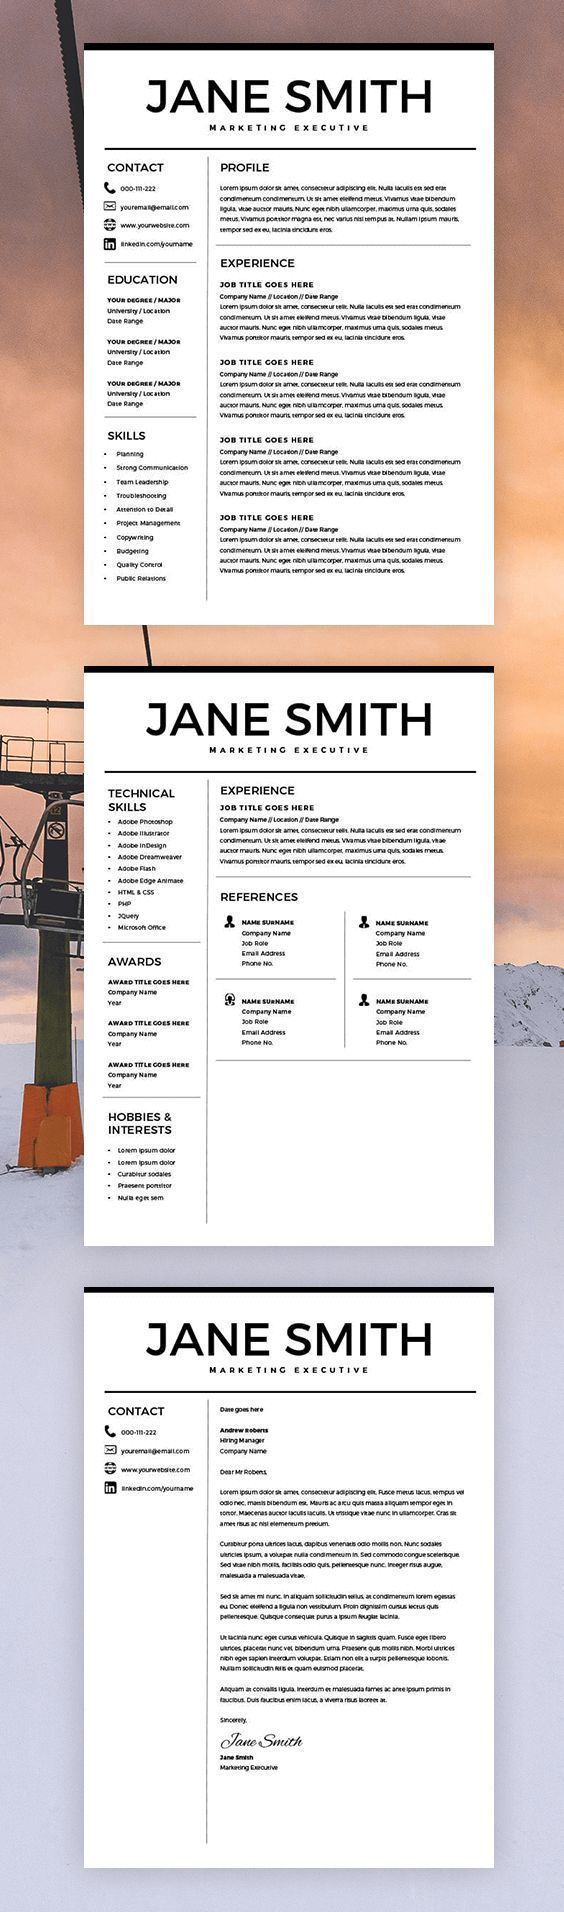 Resume for Microsoft Word - Minimal Resume Template - CV Template ...